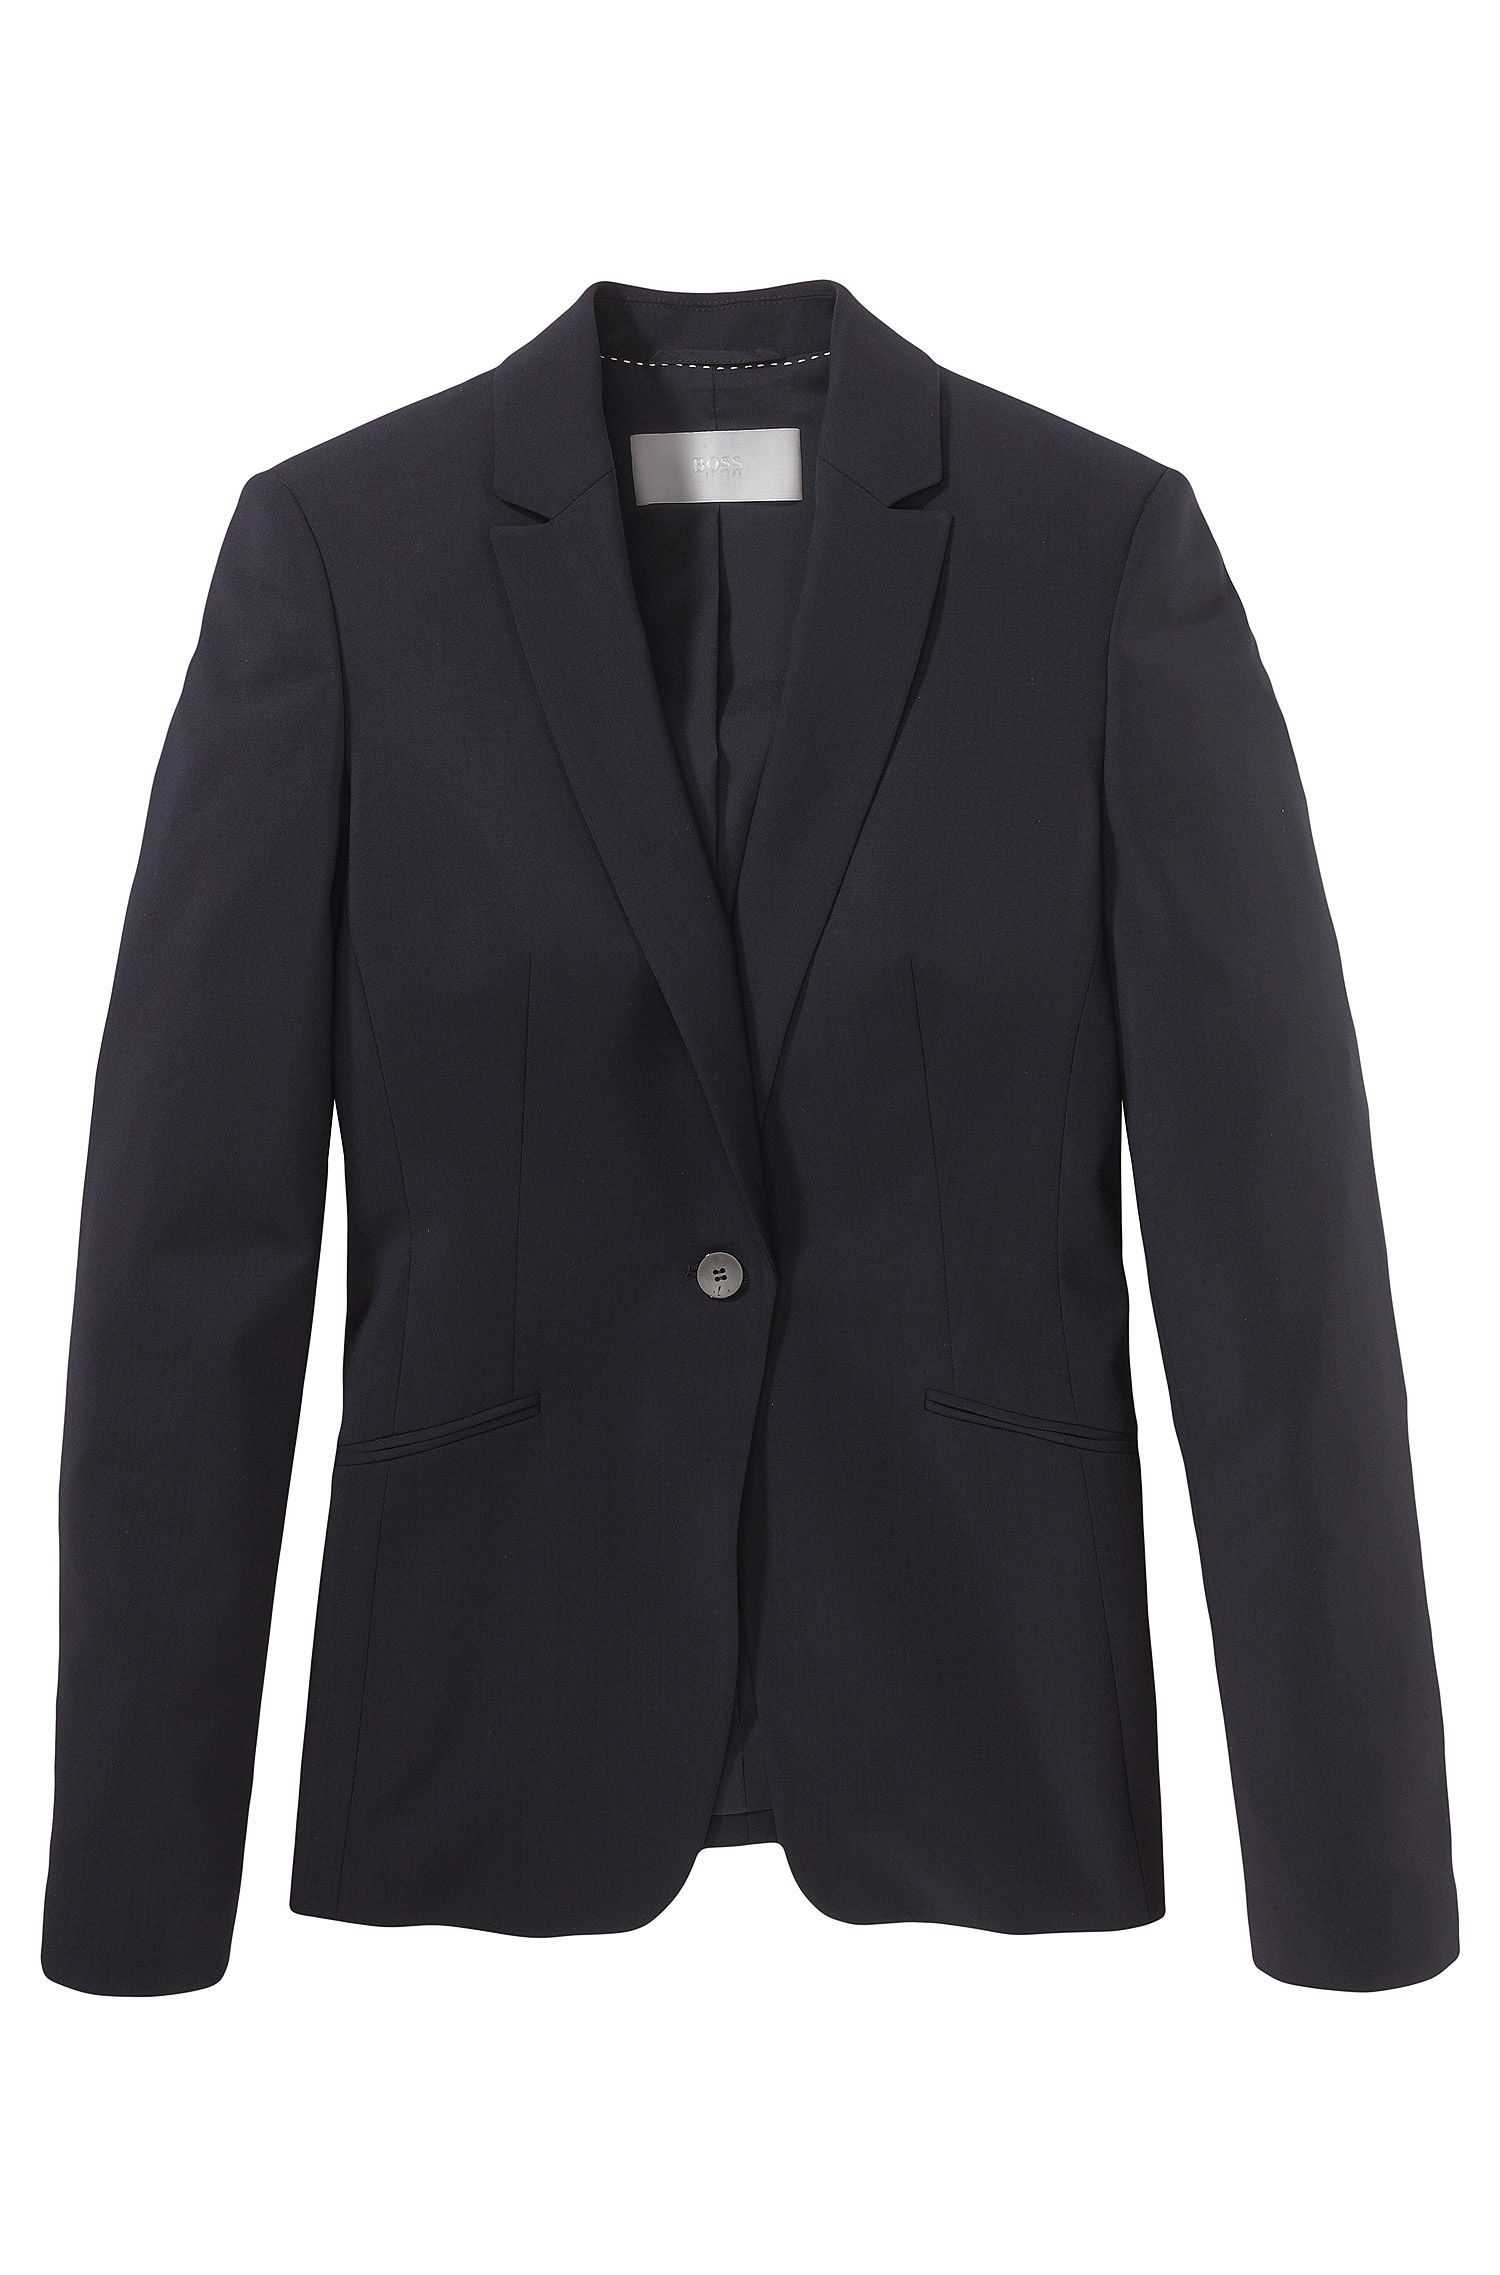 Stretch wool blazer with curved lapels by BOSS Womenswear Fundamentals